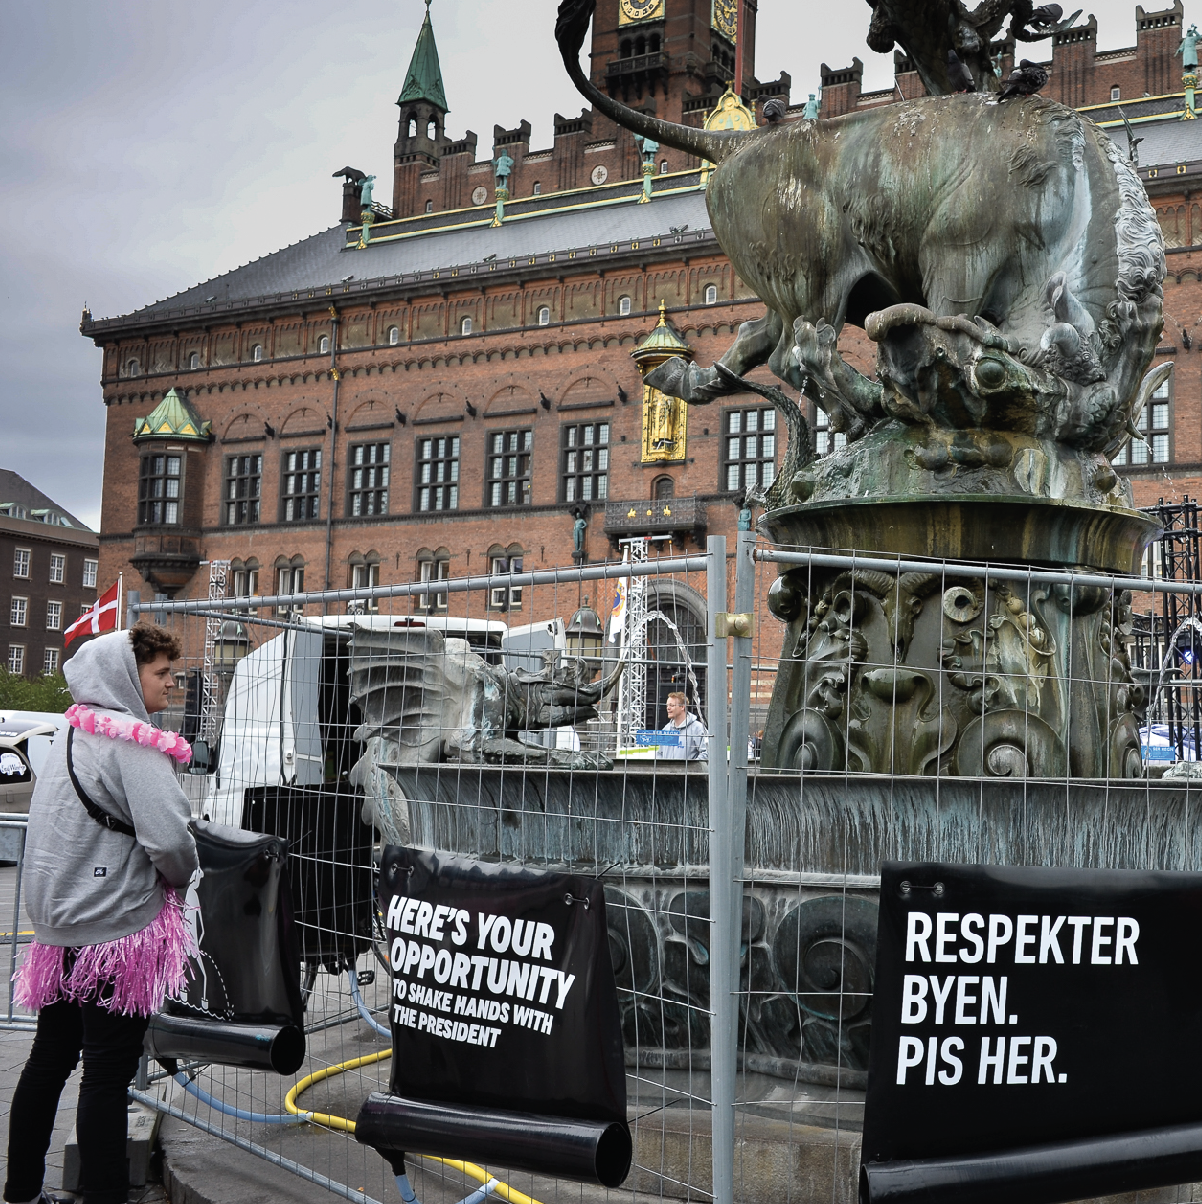 Photo of Peefence urinals protecting a statue on Copenhagen town square